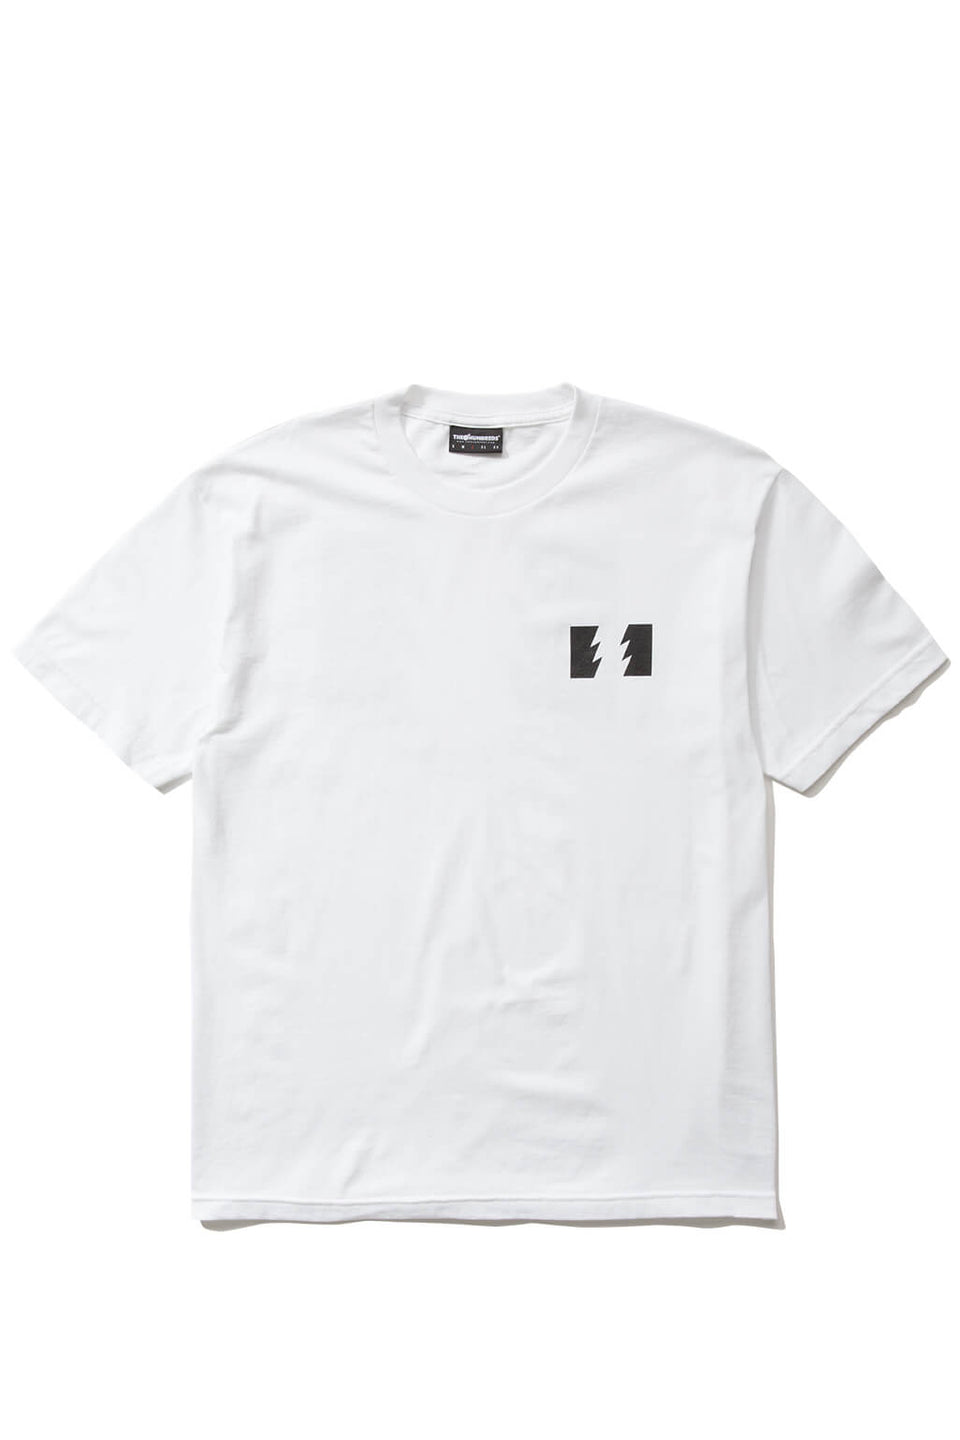 The Hundreds Forever Wildfire T-Shirt - White